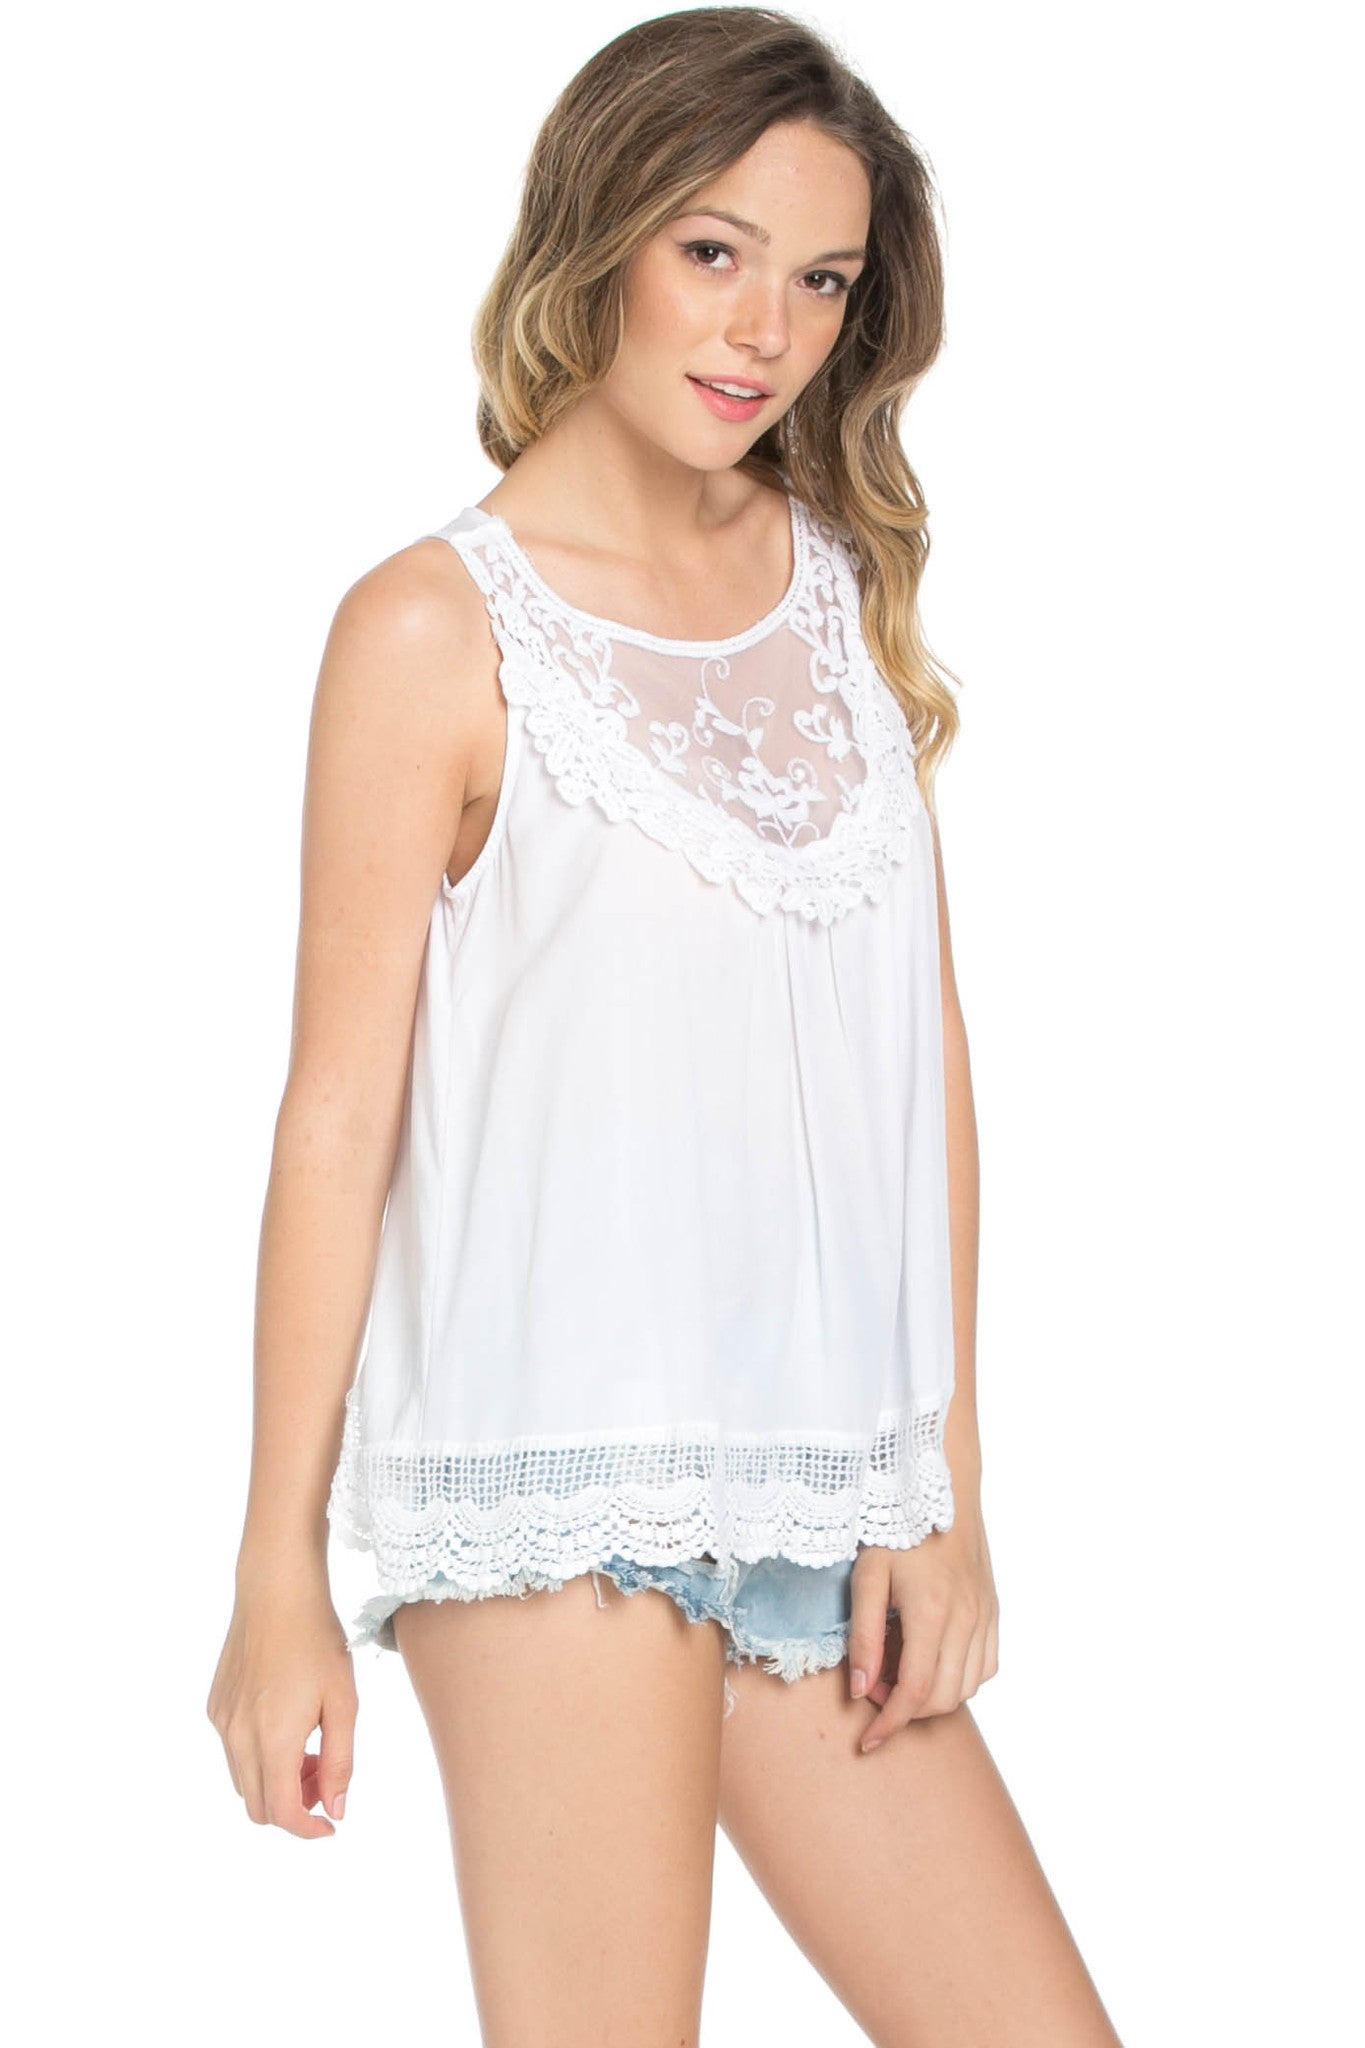 Crochets and Lace Ivory Top - Tops - My Yuccie - 8